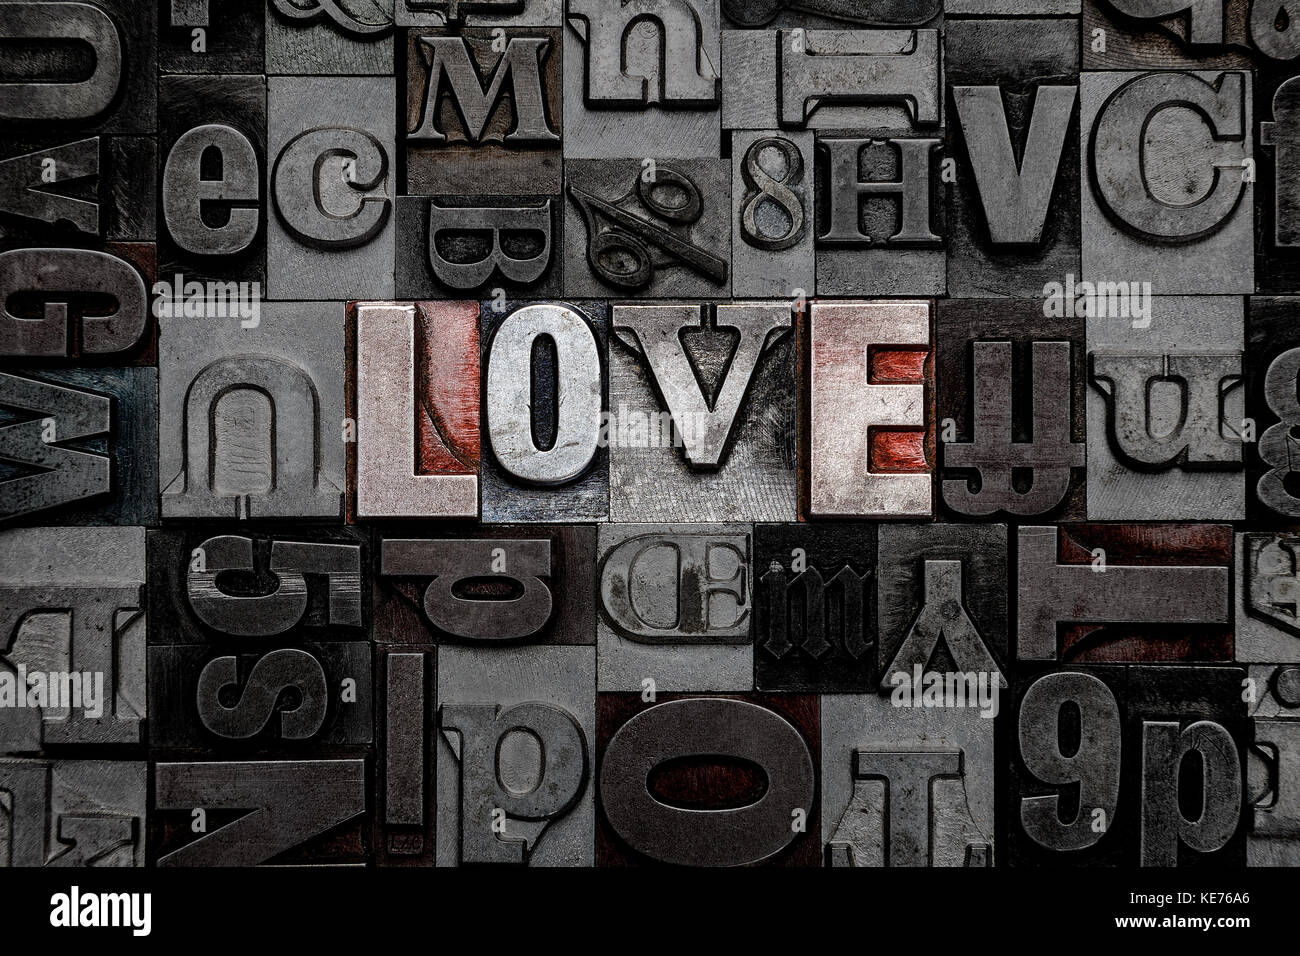 The word Love made from old metal letterpress letters - Stock Image